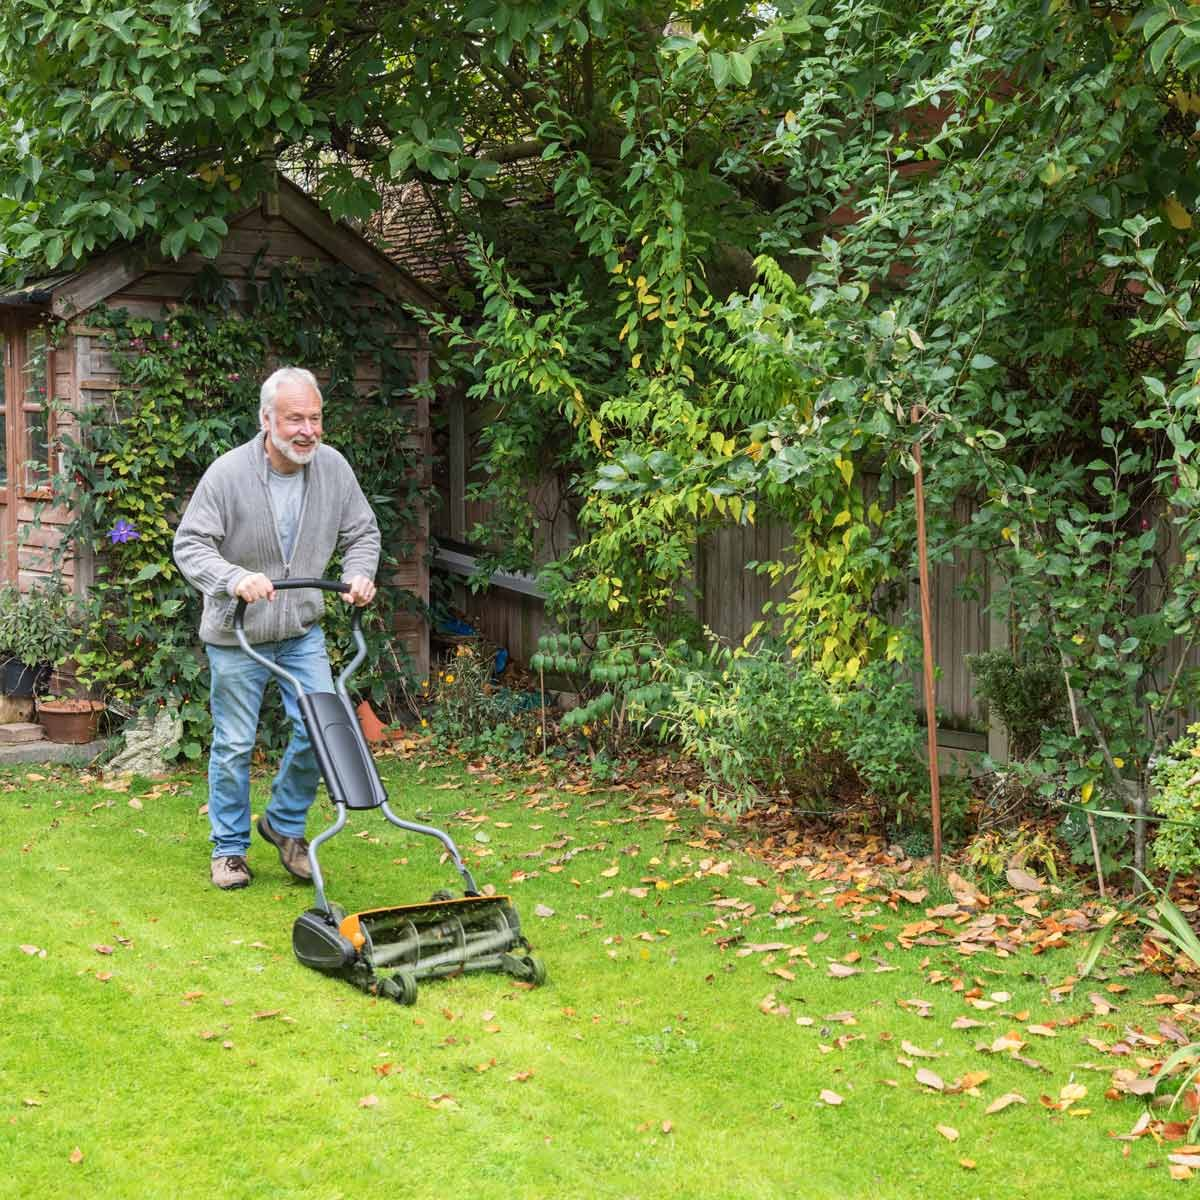 Senior man mowing grass with manual lawn mower